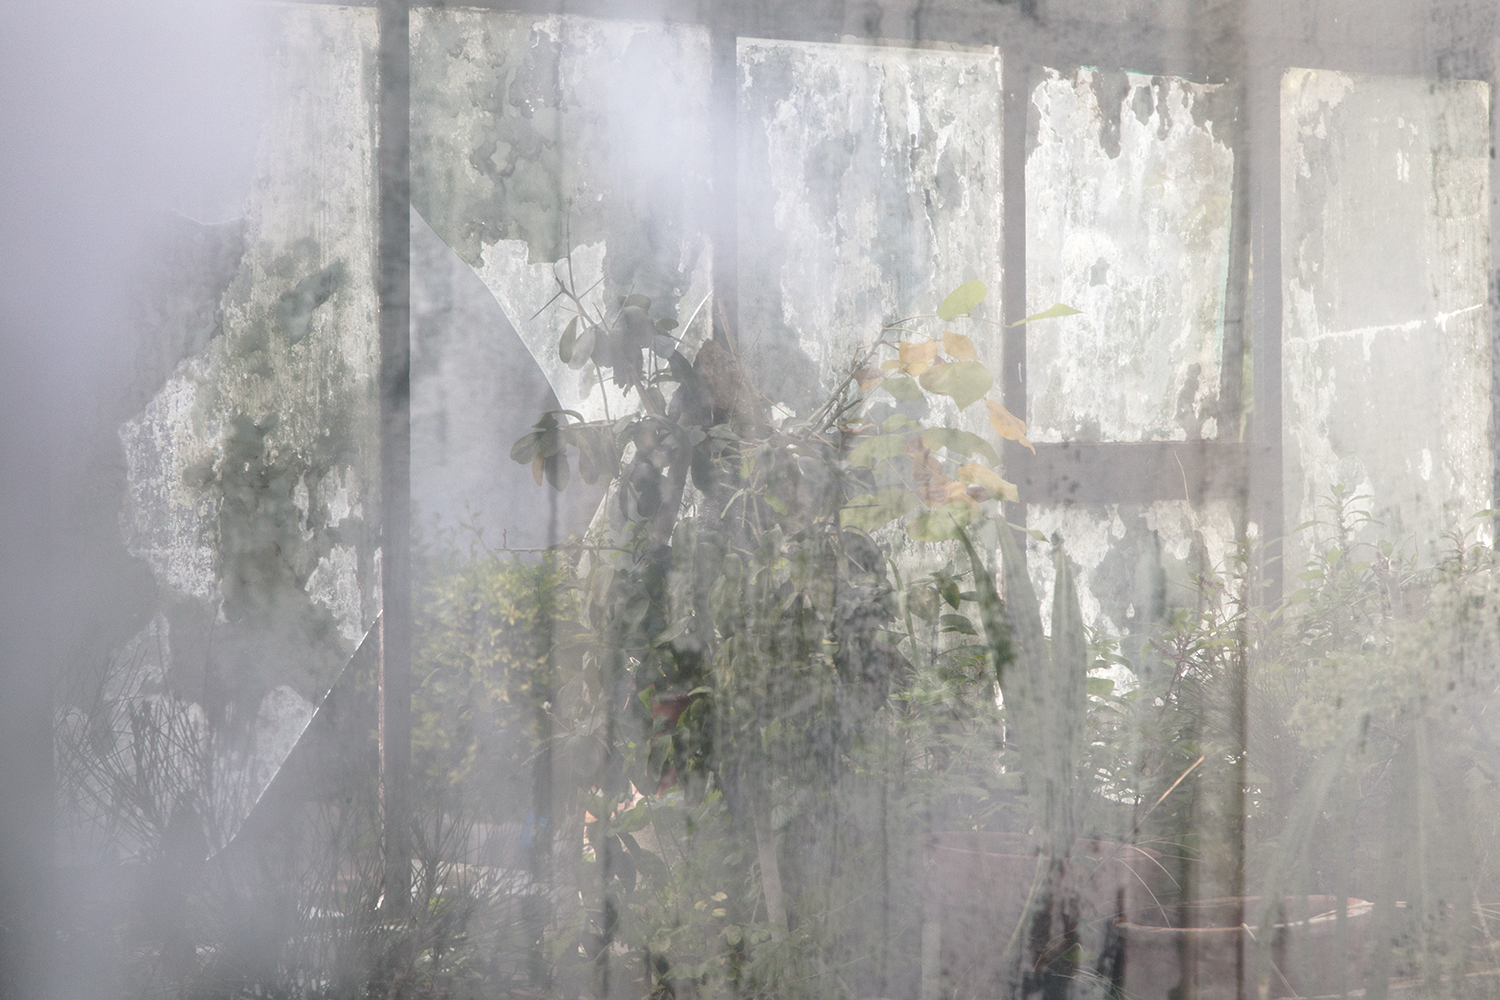 carina martins, urupe - nature reflected through windows 4